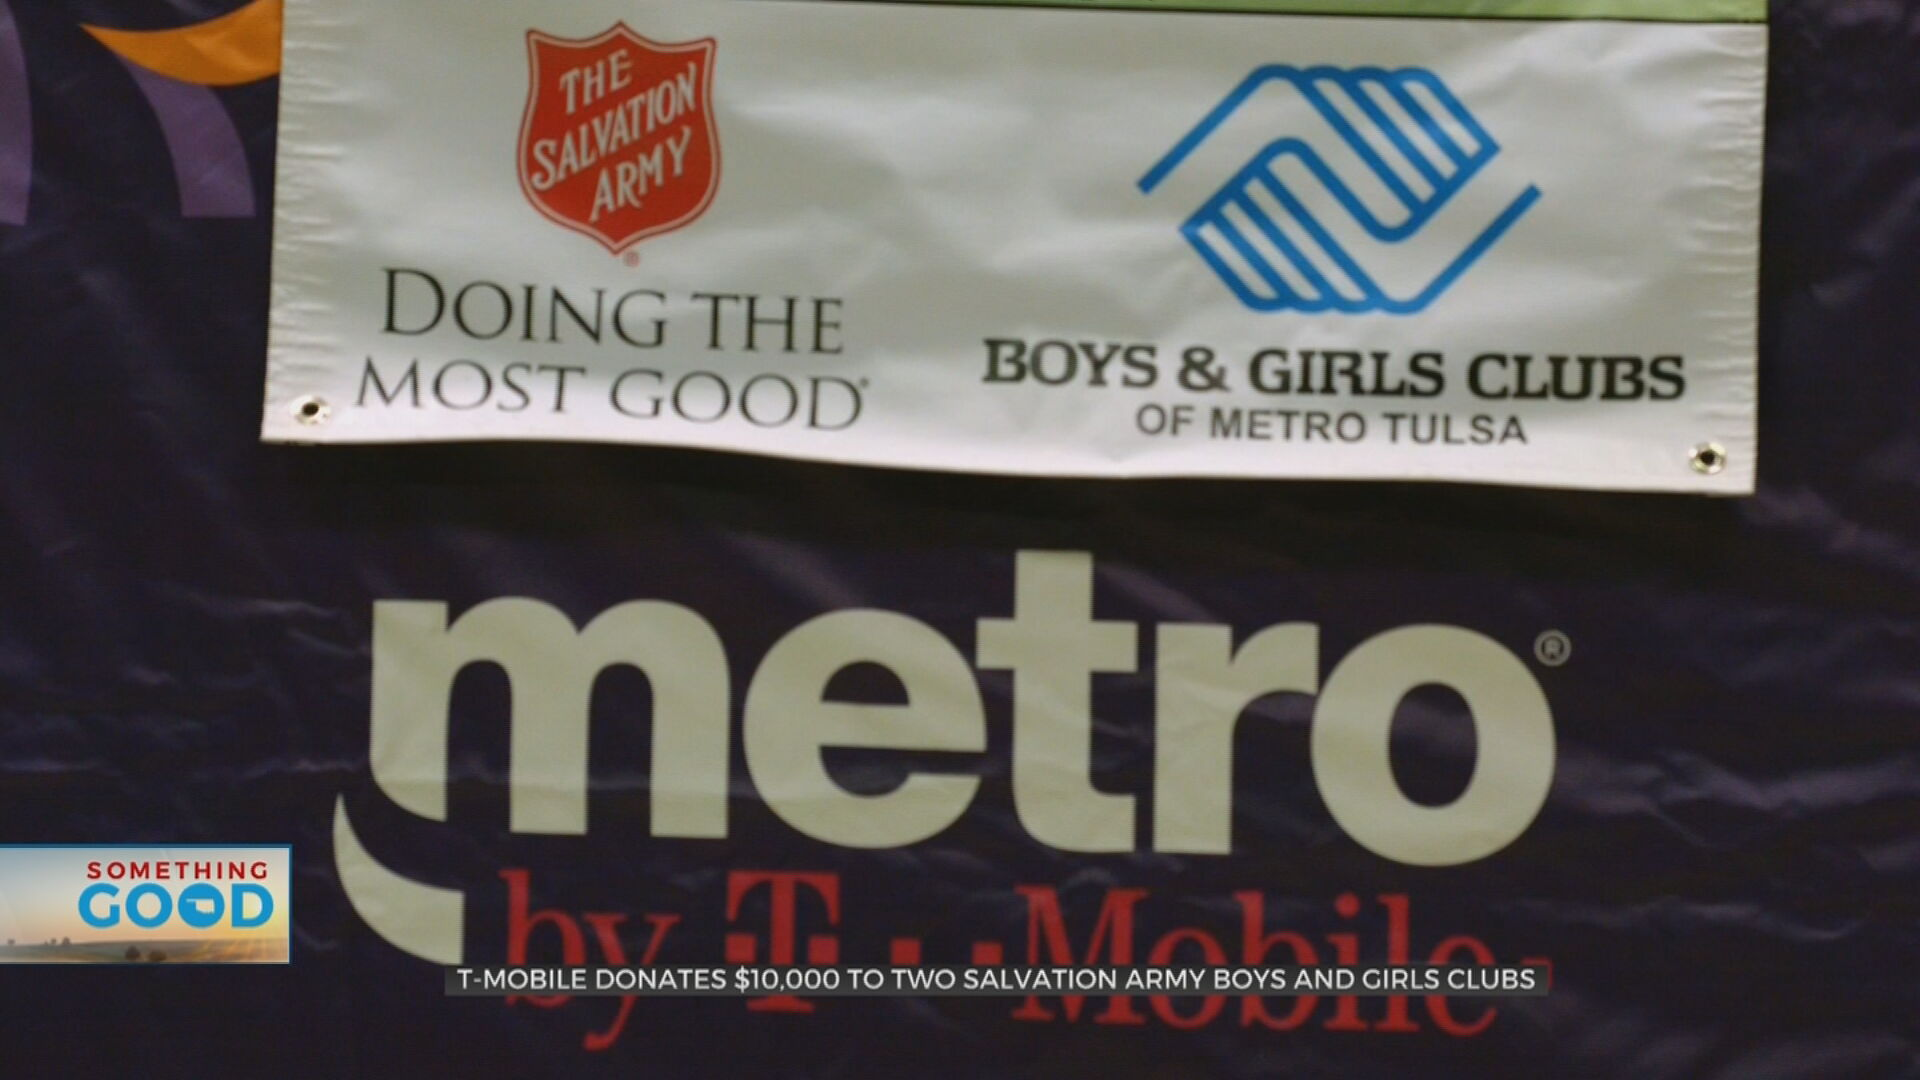 $10,000 Donated To Salvation Army Boys & Girls Clubs